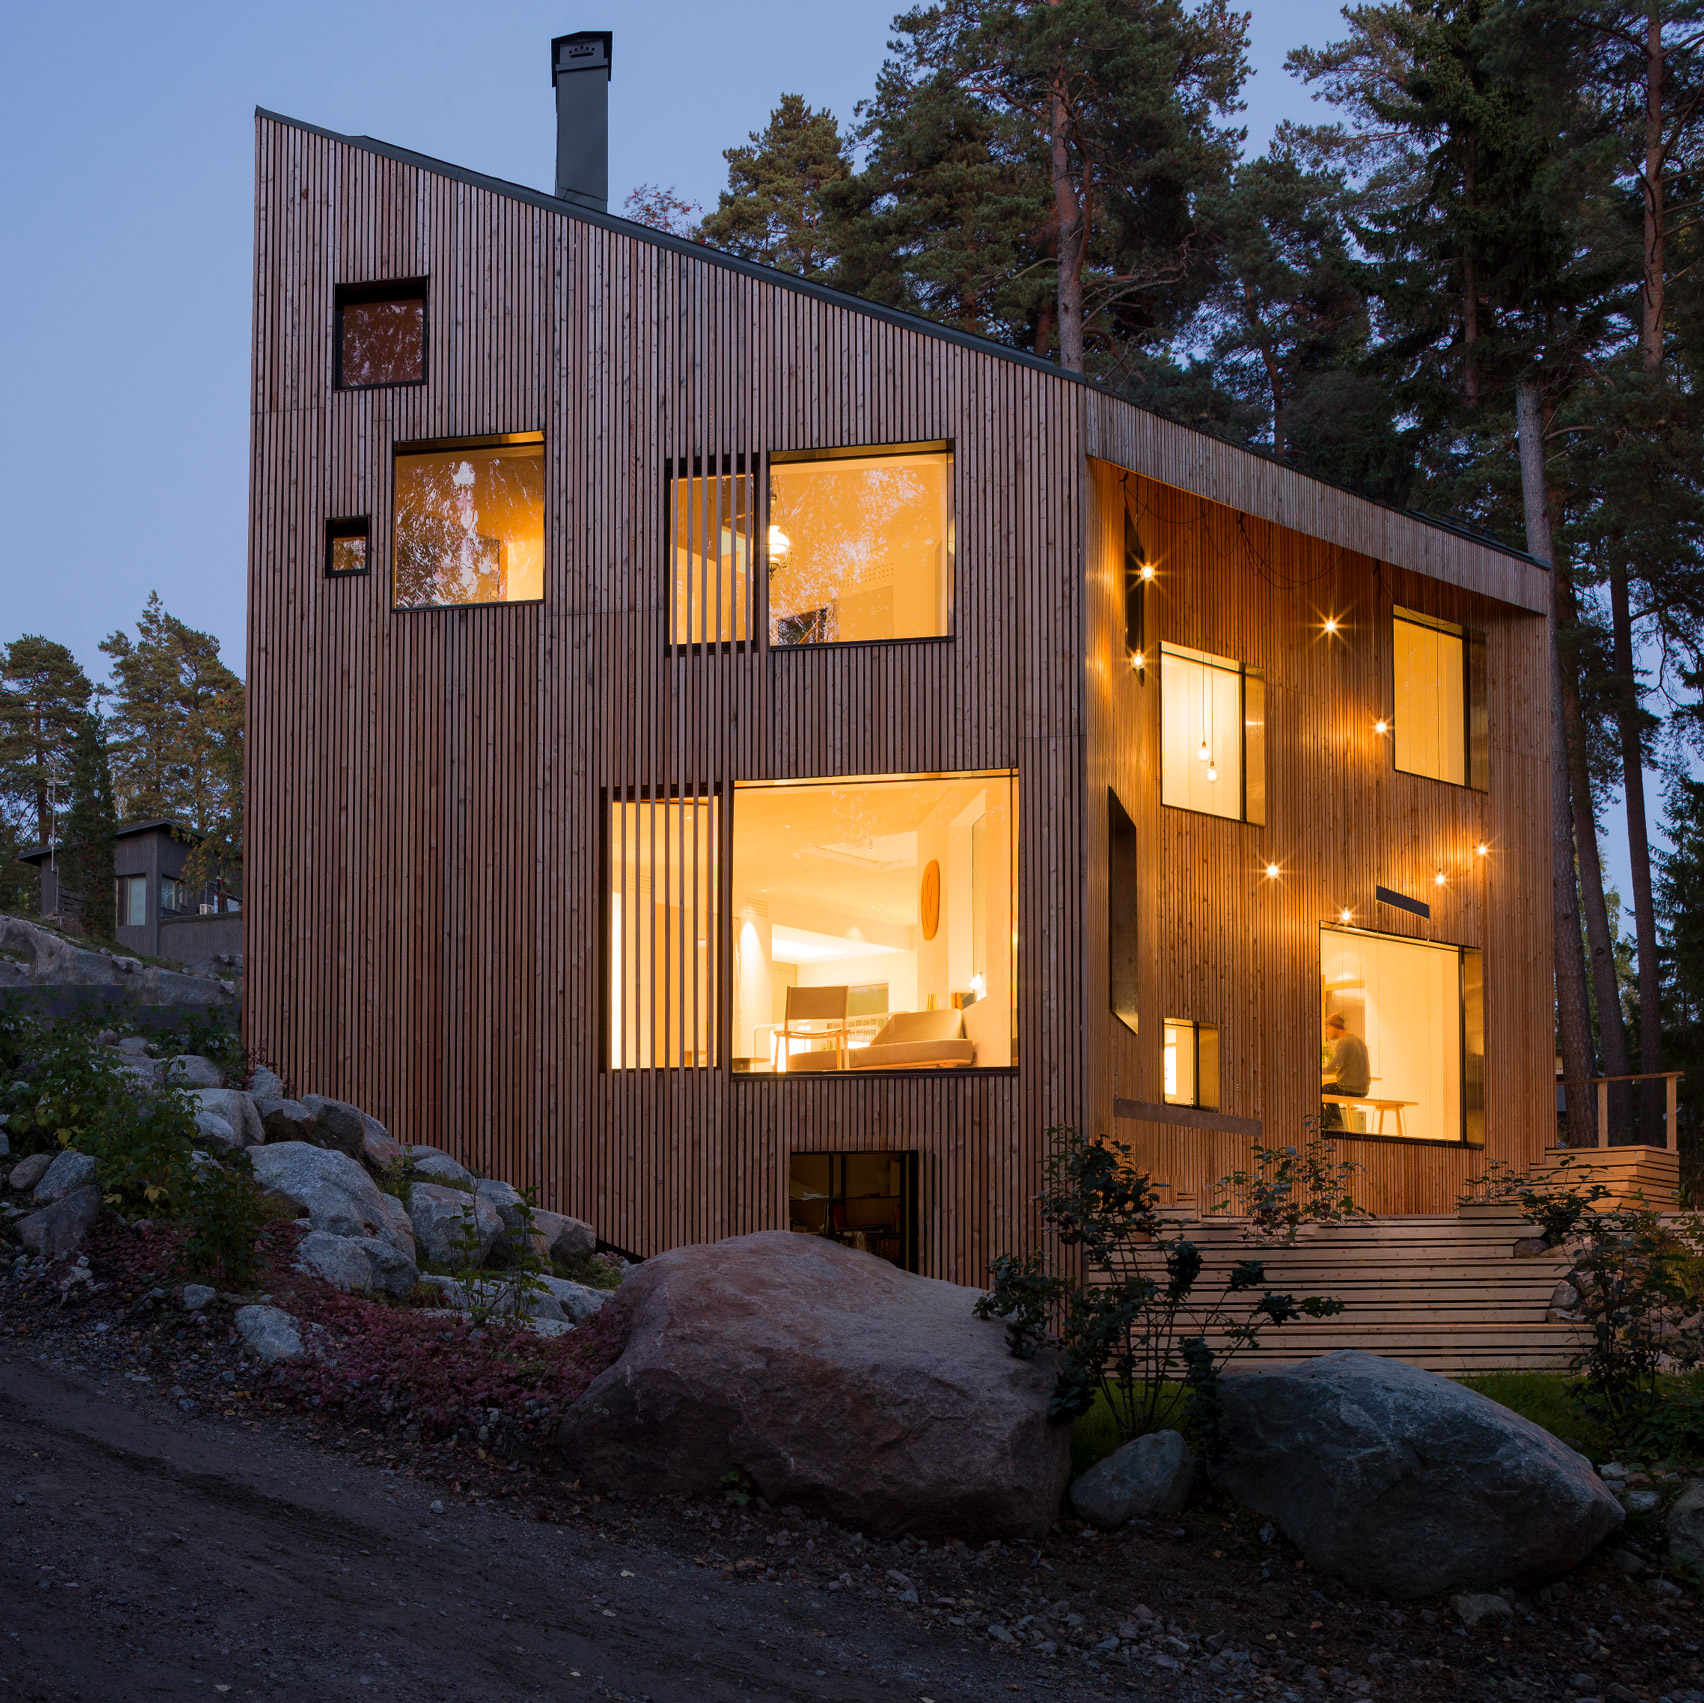 House design and architecture in Finland | Dezeen on amazing unusual homes, amazing prefab homes, amazing architectural structures, amazing beauty, amazing mexico homes, amazing black and white, amazing home exteriors, amazing views of denver, amazing interior homes, amazing country homes, amazing english homes, amazing contemporary homes, amazing nursing homes, amazing underwater homes, amazing coastal homes, amazing hollywood homes, amazing art homes, amazing animal homes, classic glass homes, amazing illinois homes,